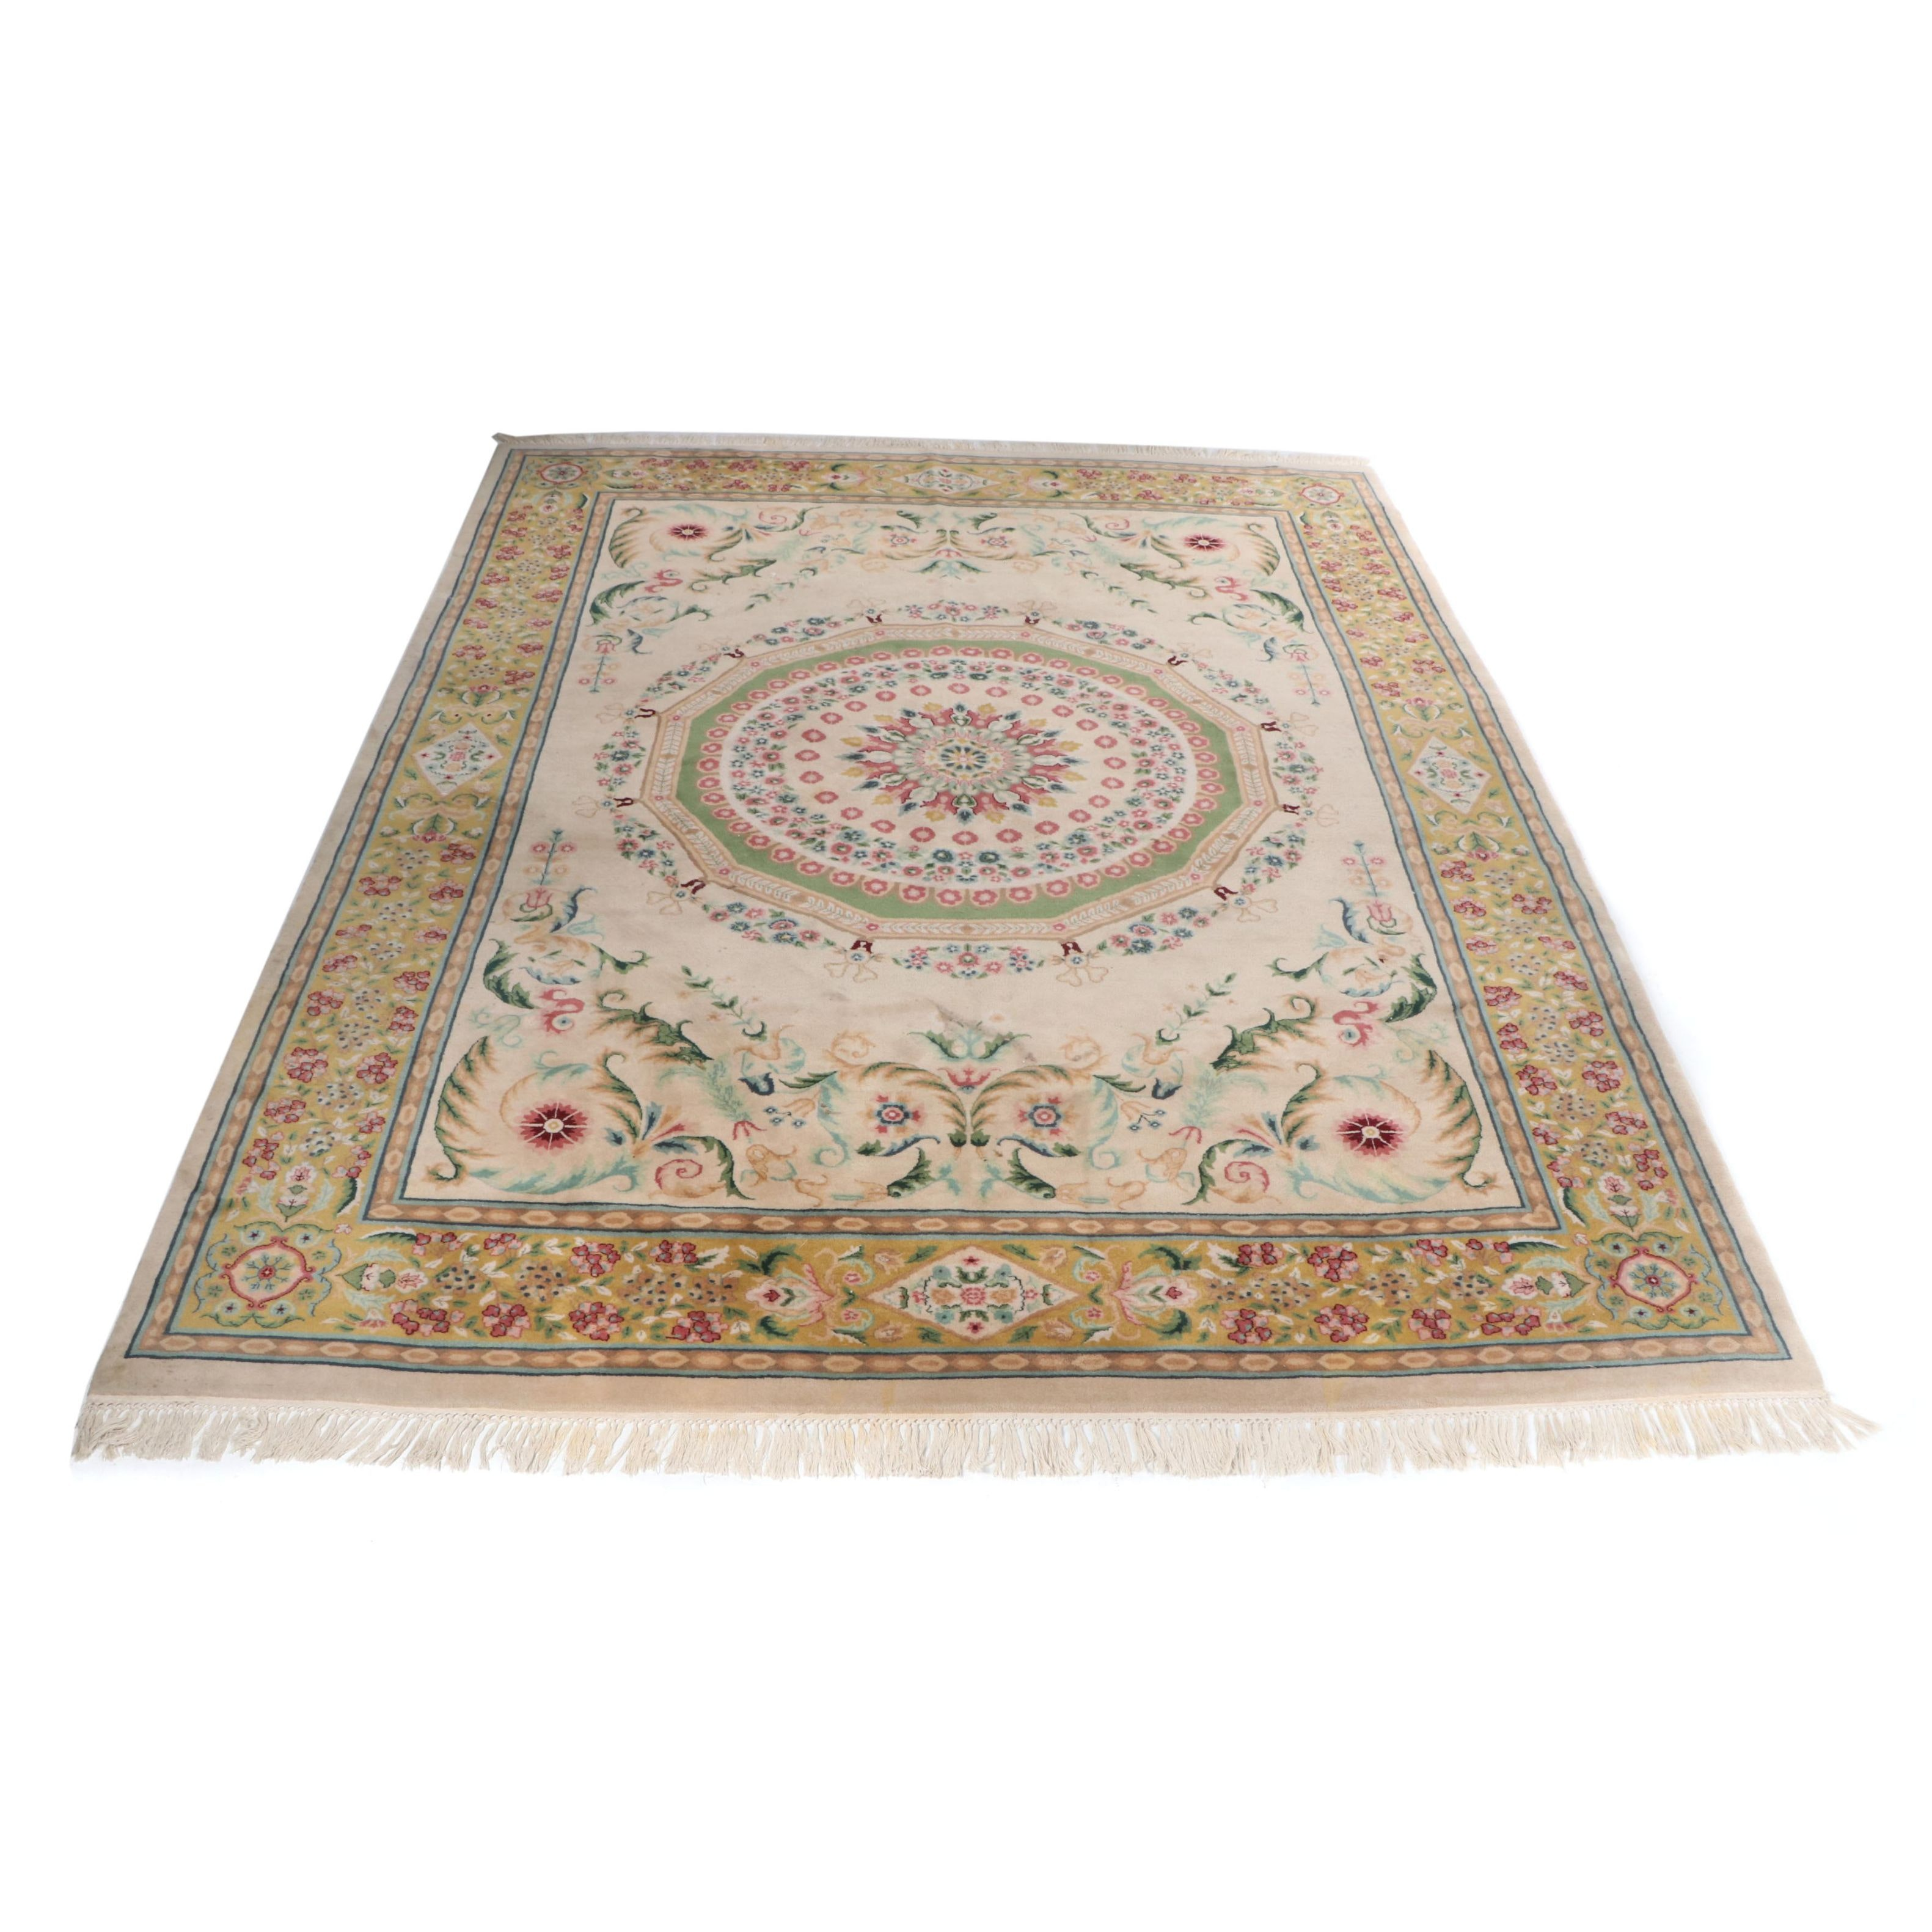 Hand-Loomed Indian Aubusson Style Wool Rug